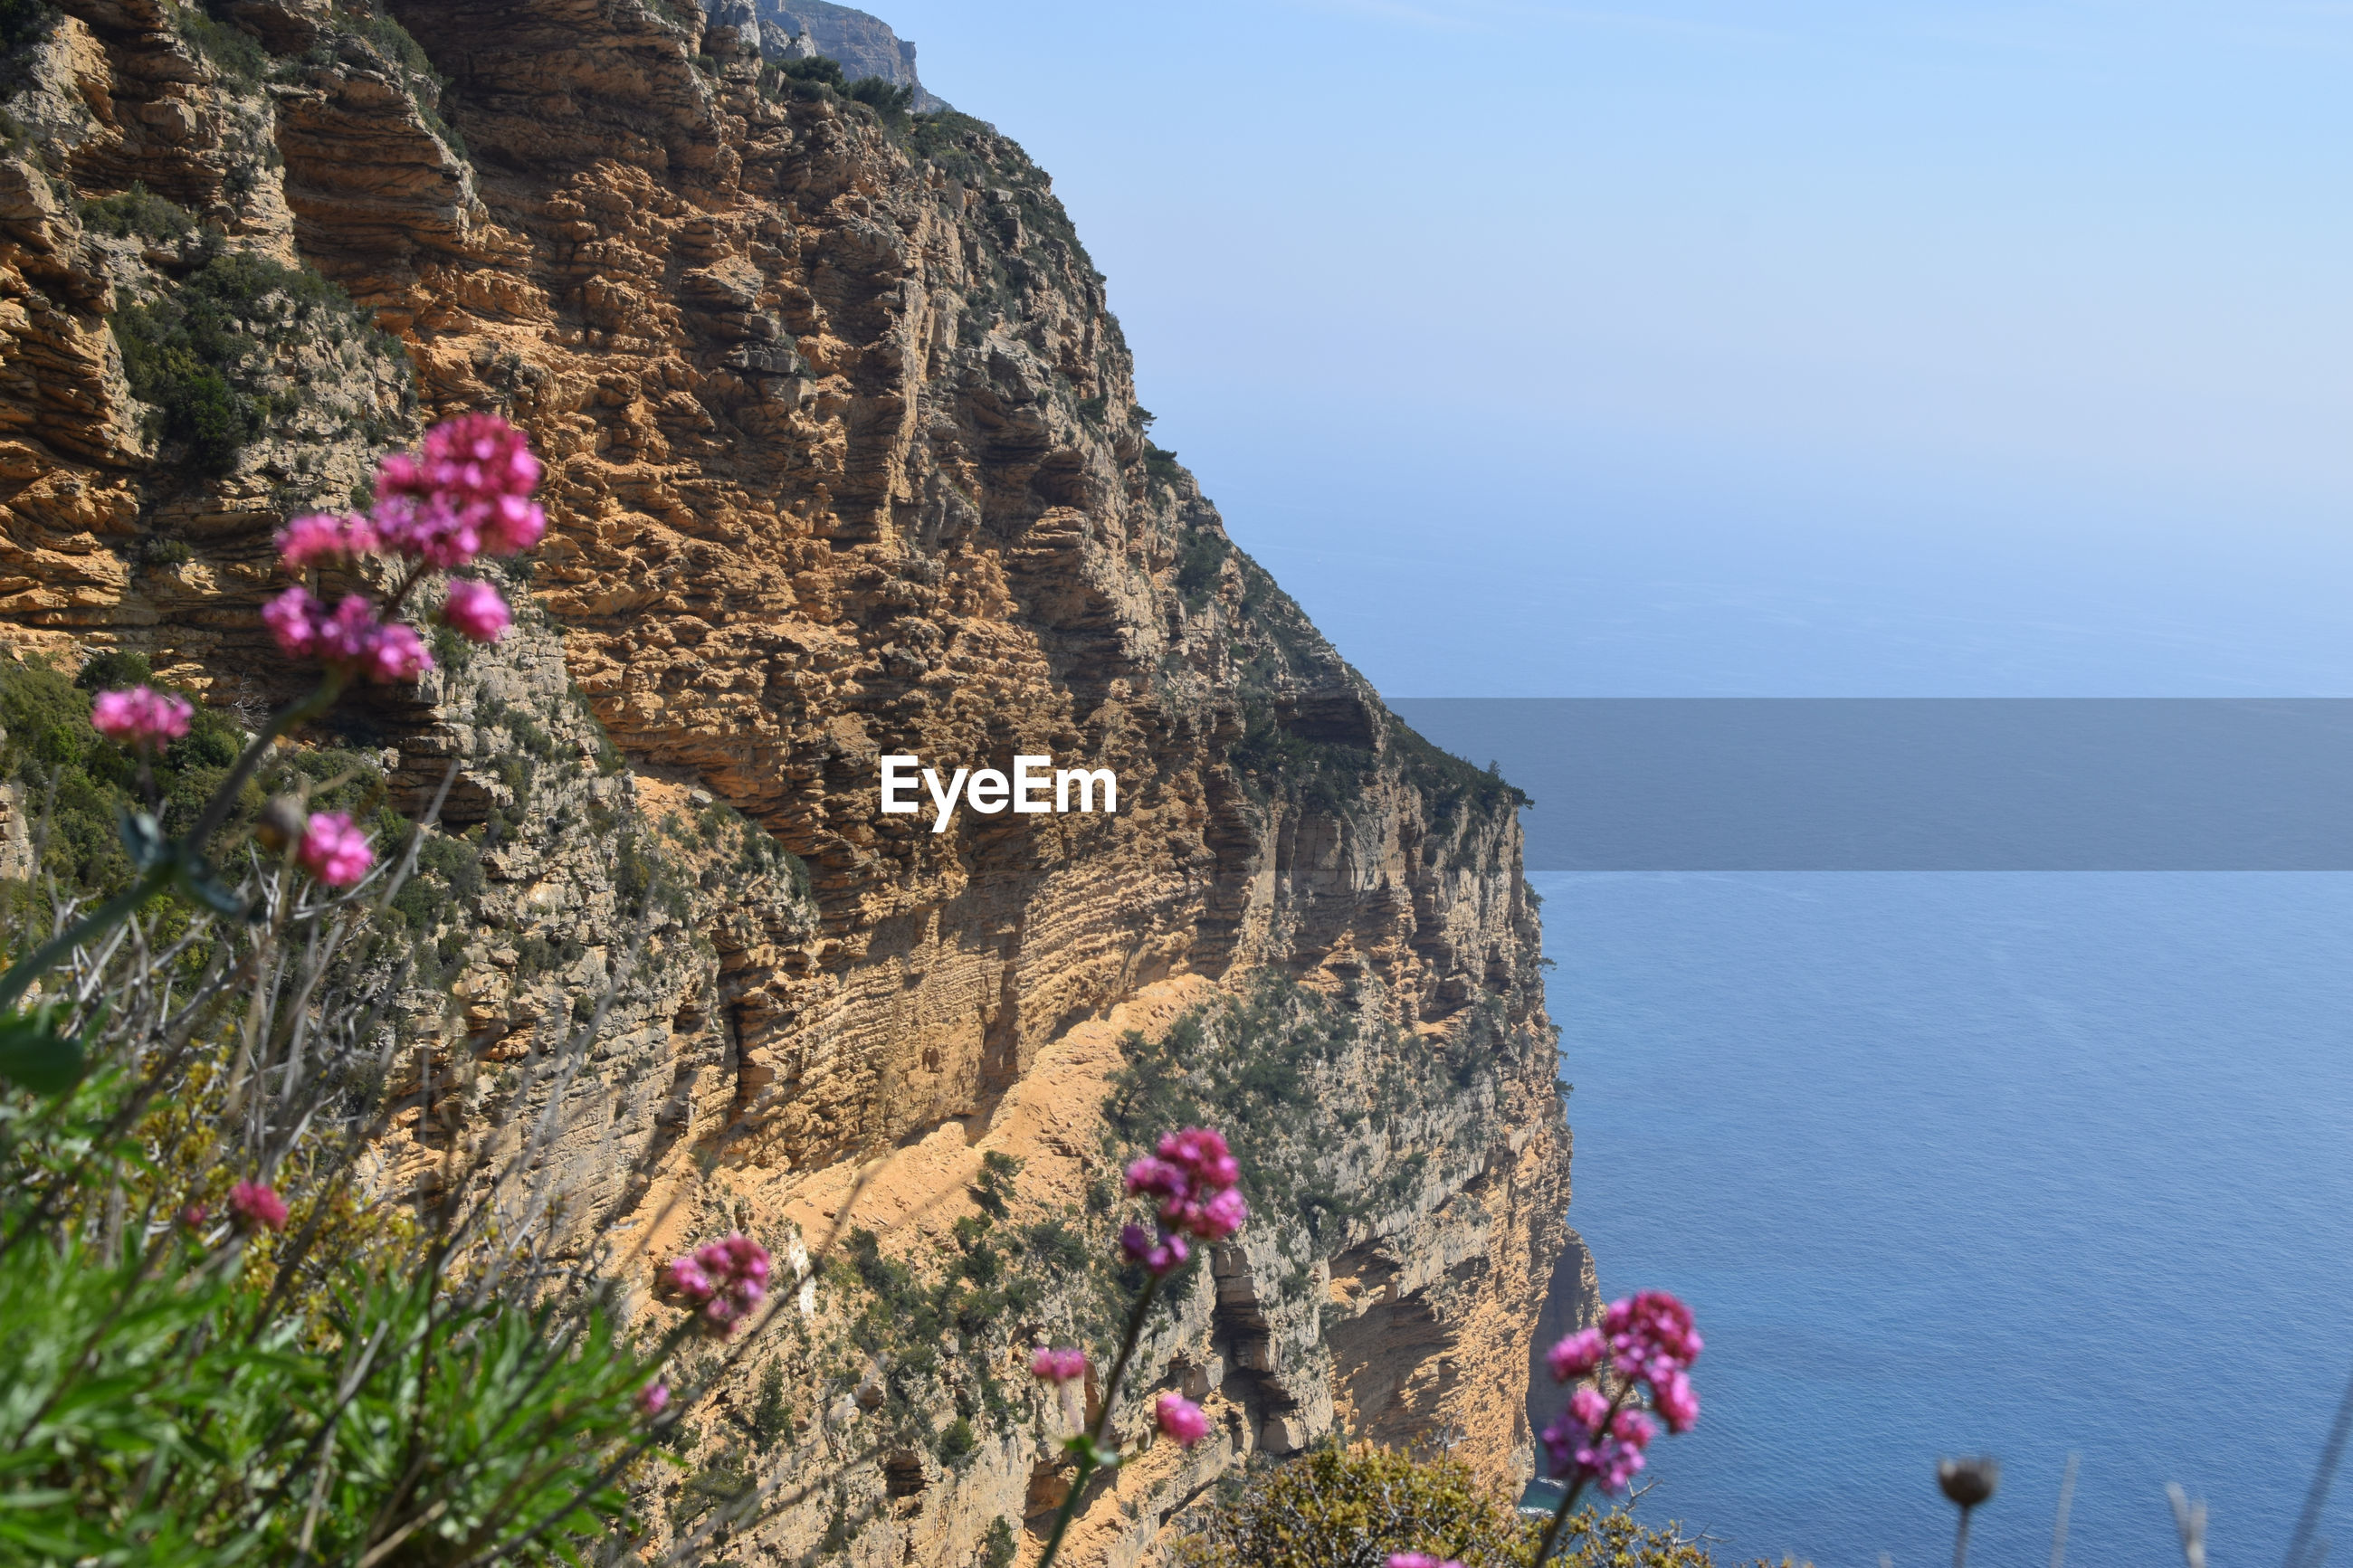 FLOWERS GROWING ON CLIFF AGAINST SKY